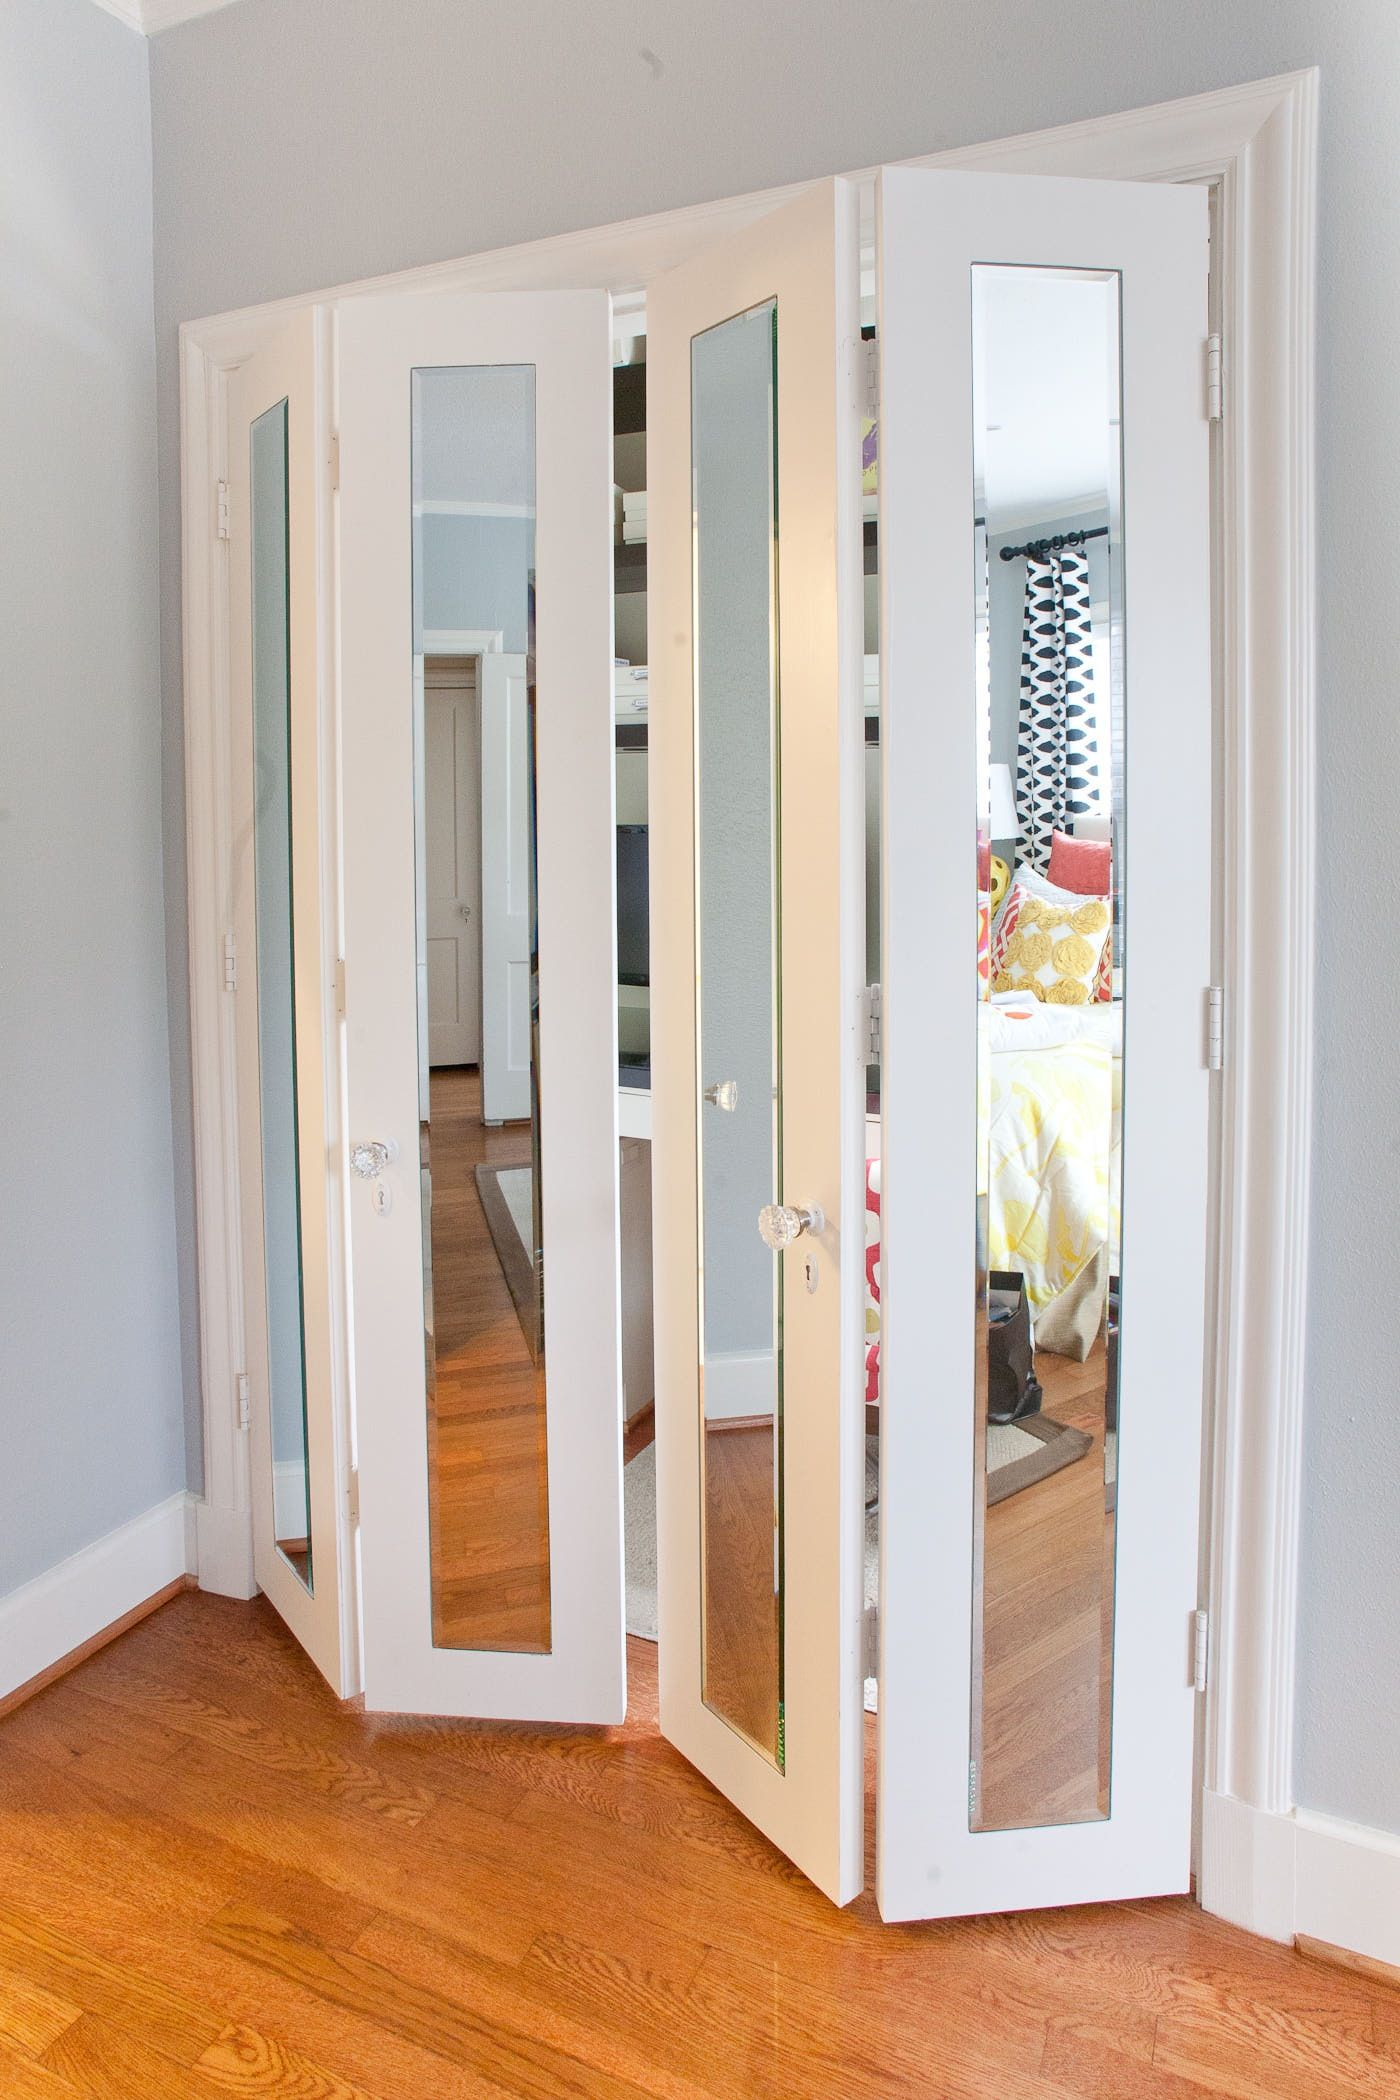 5 Ways To Decorate Your Closet Doors Oliver S Room Bedroom Closet Doors Closet Bedroom Mirror Closet Doors